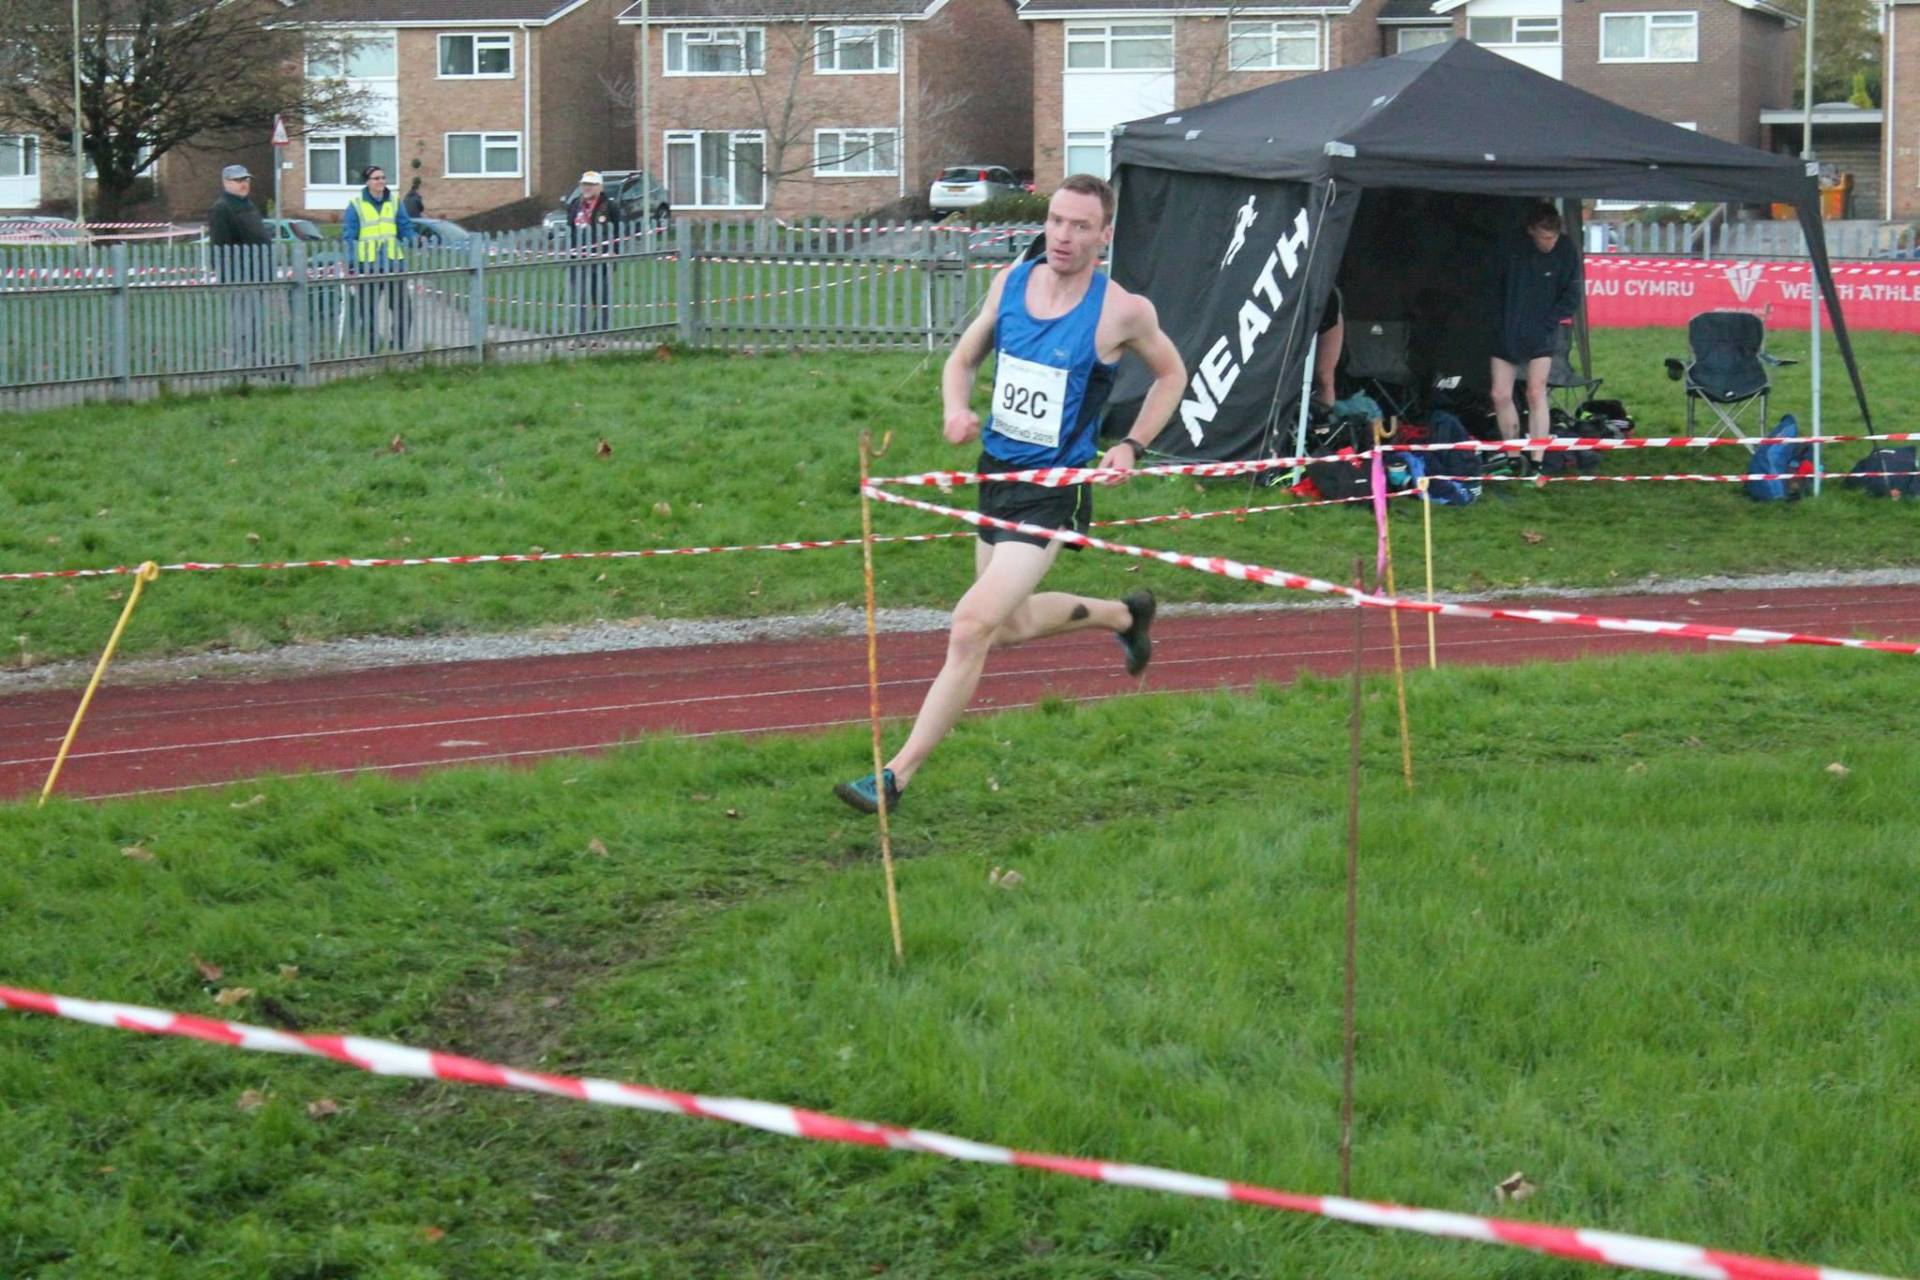 Bob wins again in the Mountains – Paul PB's over 3000m – Wins for Chris & Joe in Park 5k – Longridge 7 – All the fun of the Turkey Trot